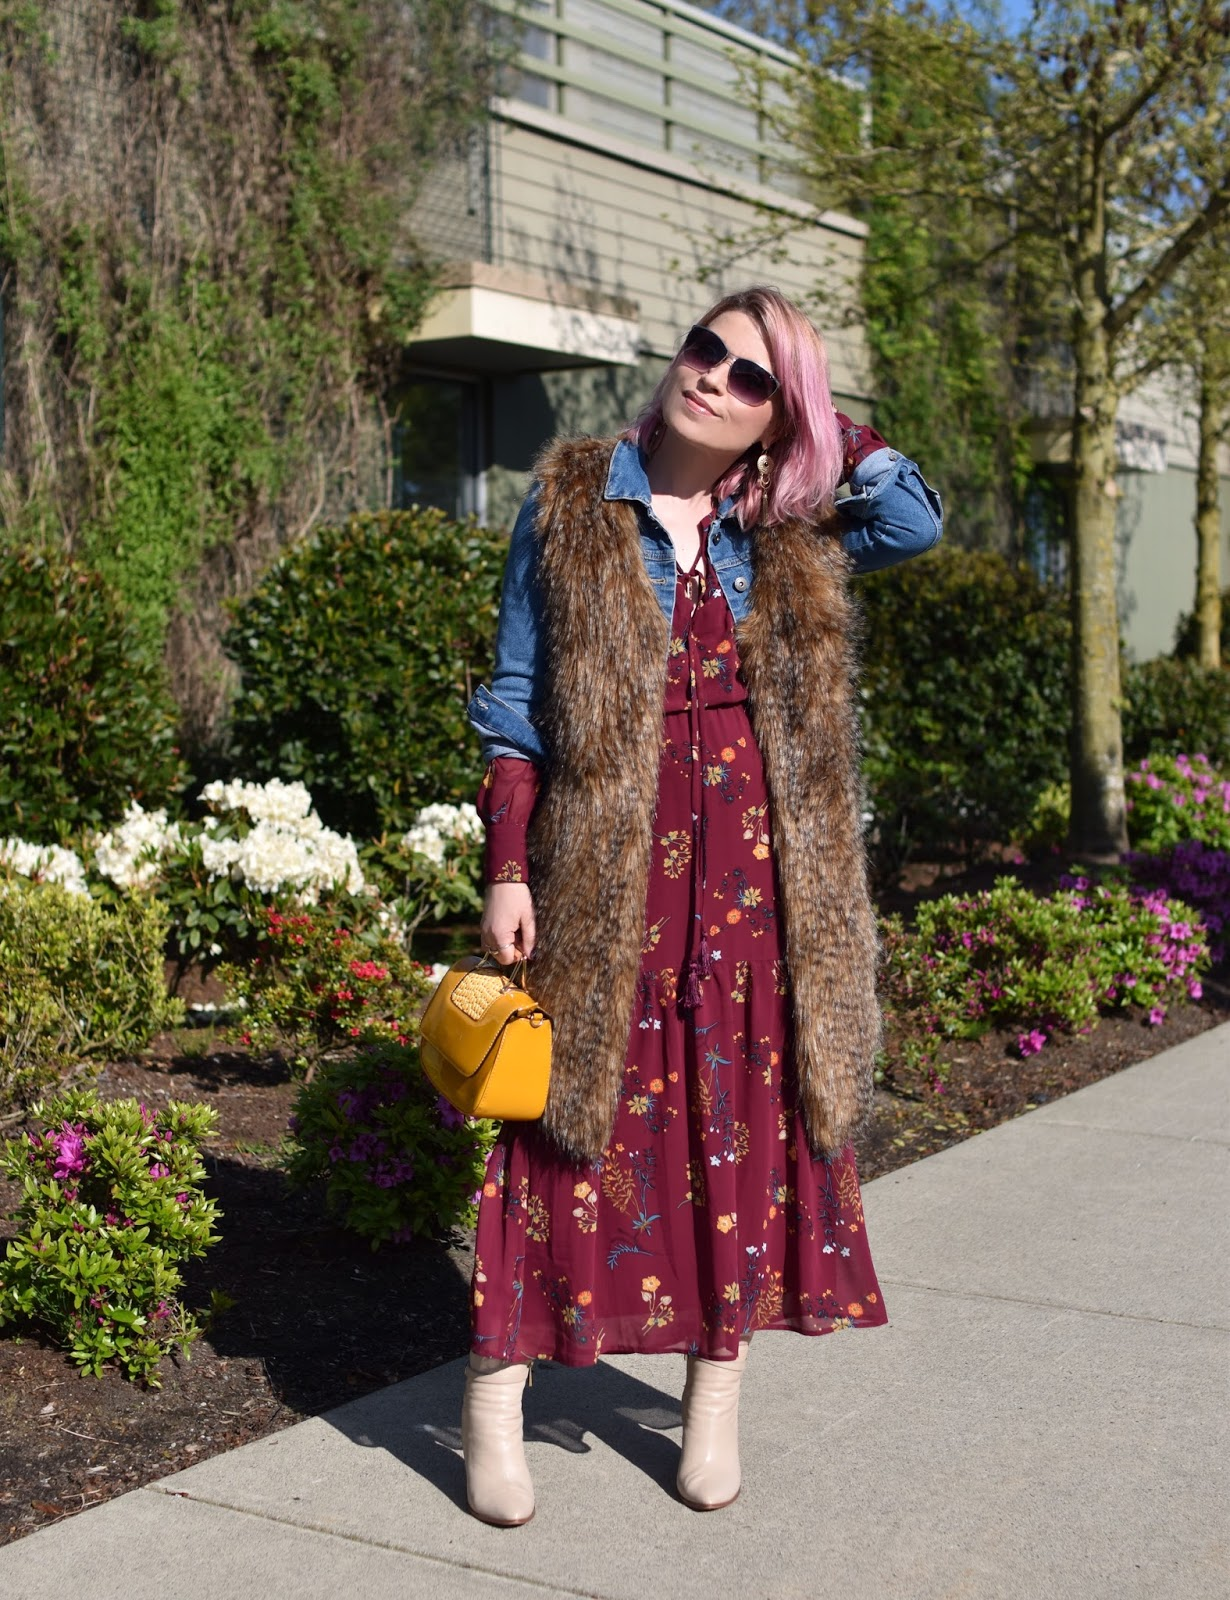 Monika Faulkner outfit inspiration - styling a floral maxi dress with a denim jacket, long faux-fur vest, and ivory ankle boots